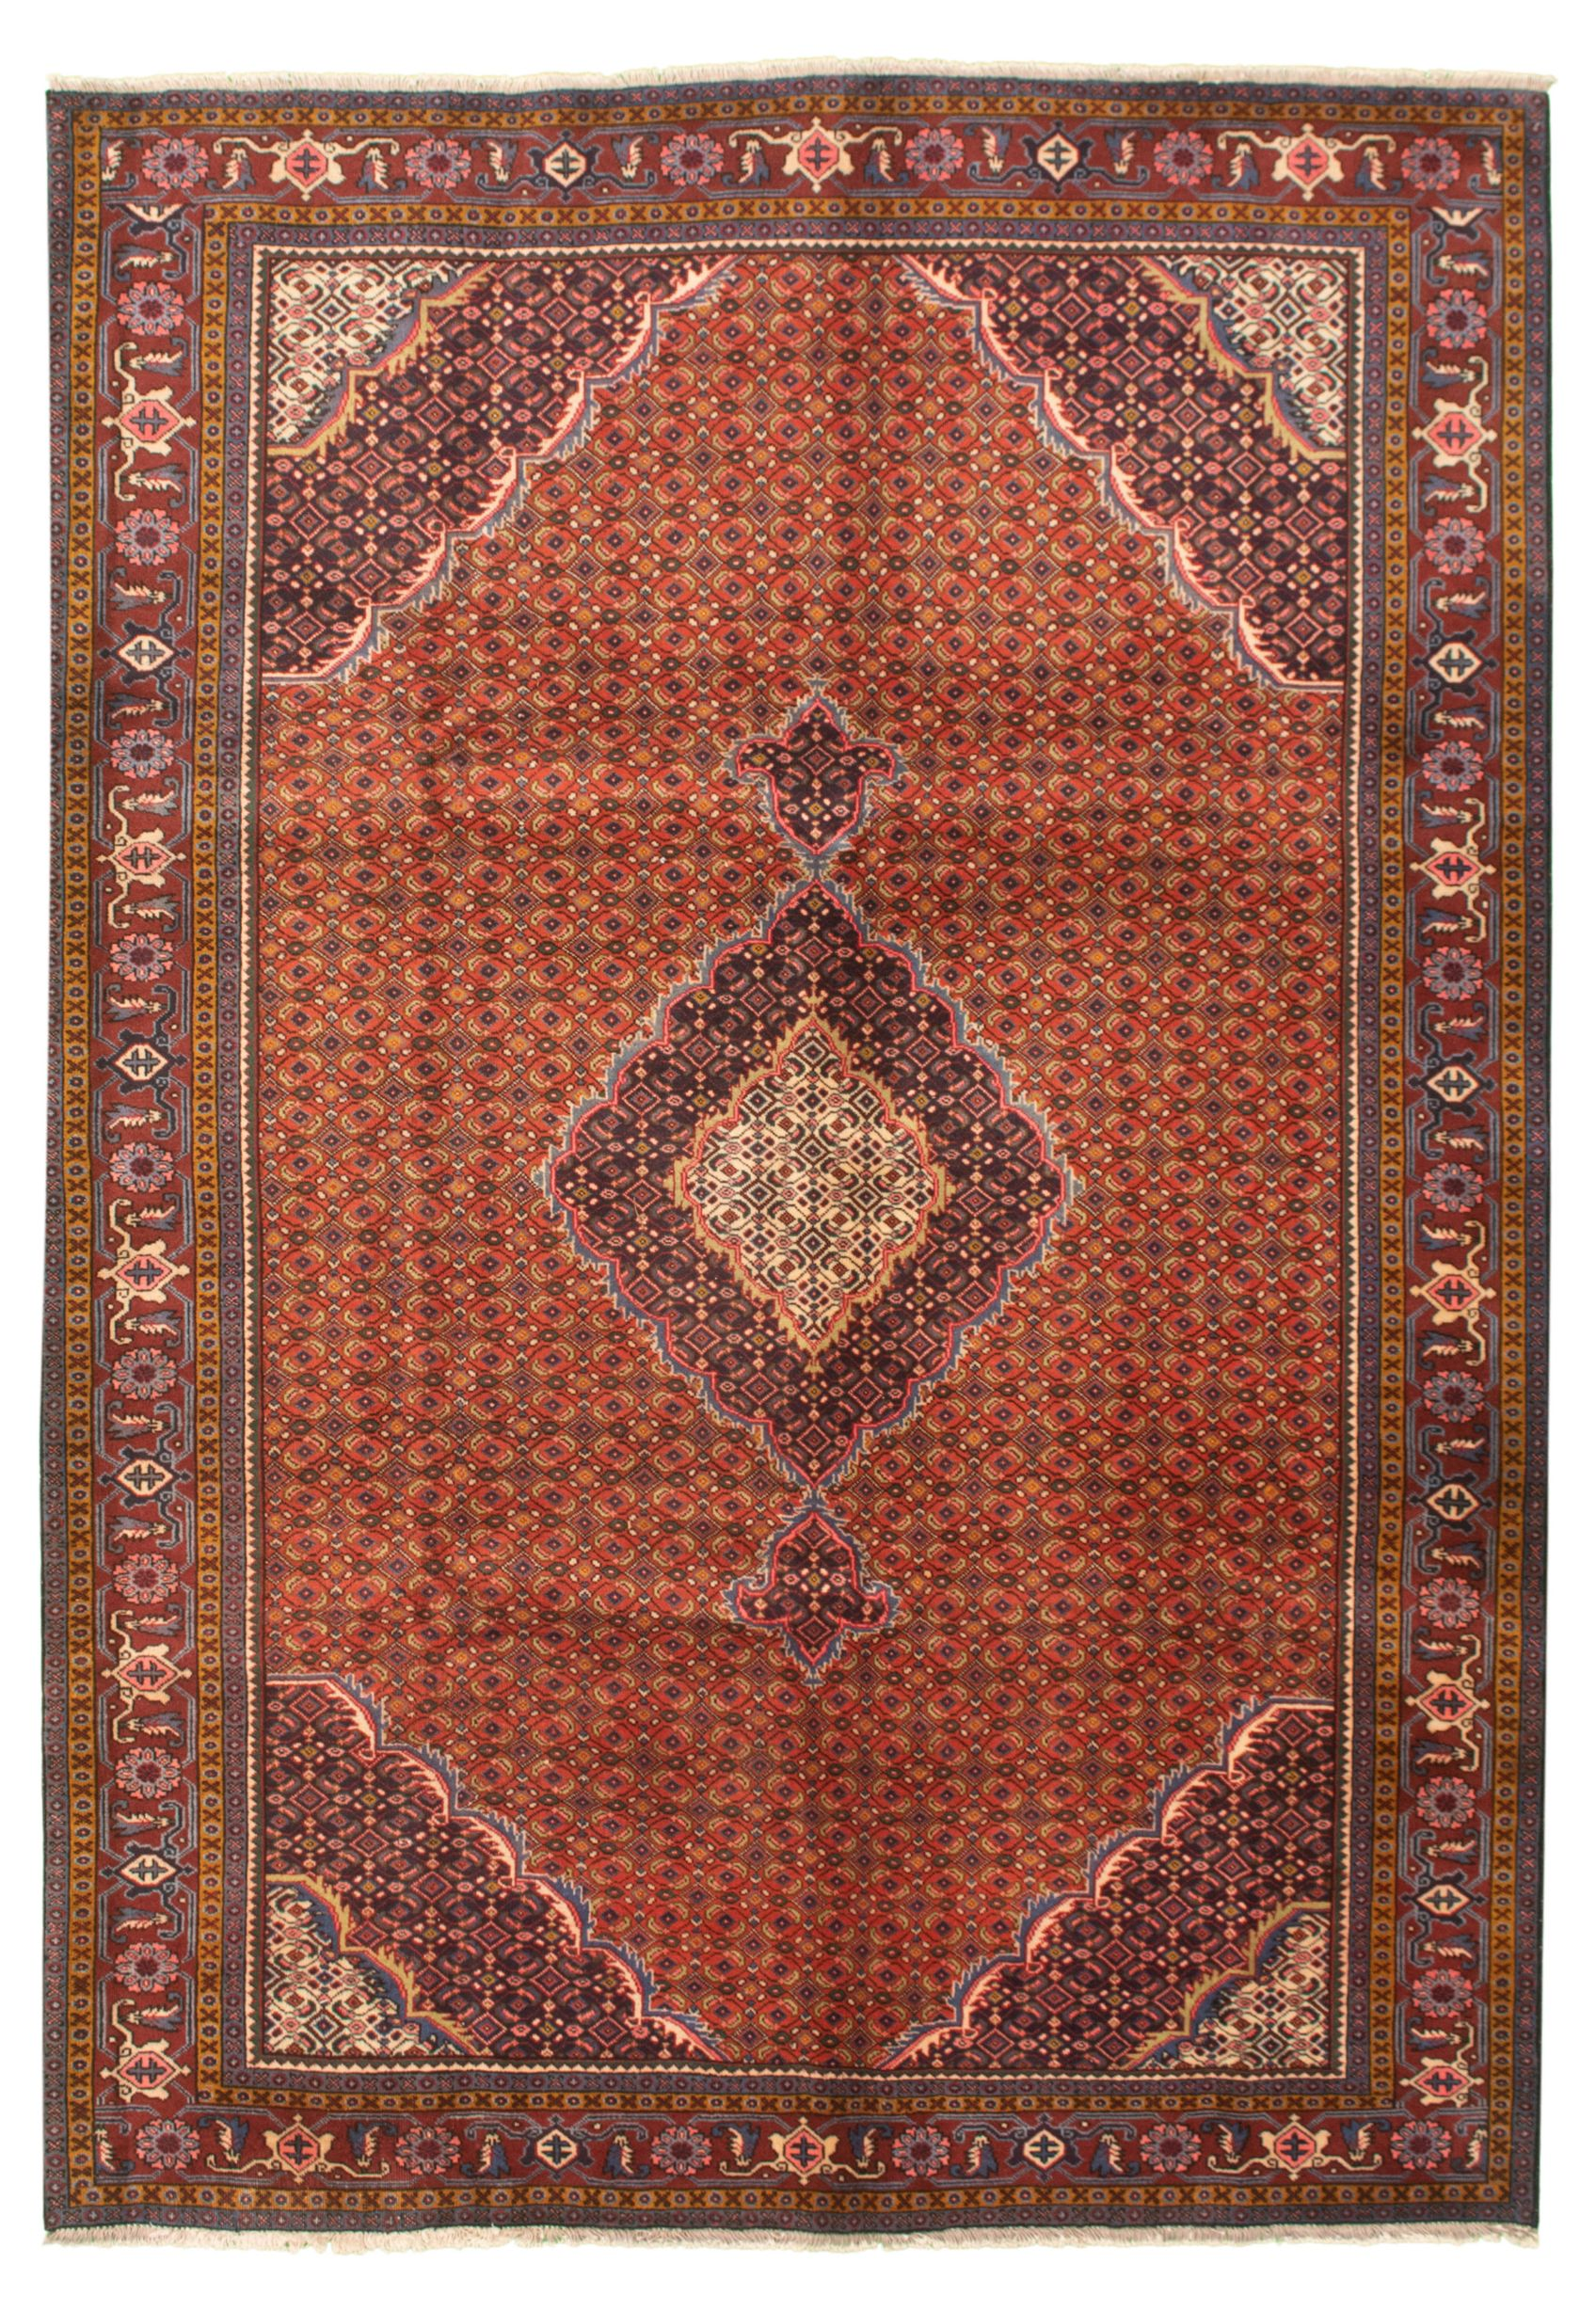 "Hand-knotted Authentic Turkish Red Wool Rug 6'6"" x 9'5"" Size: 6'6"" x 9'5"""